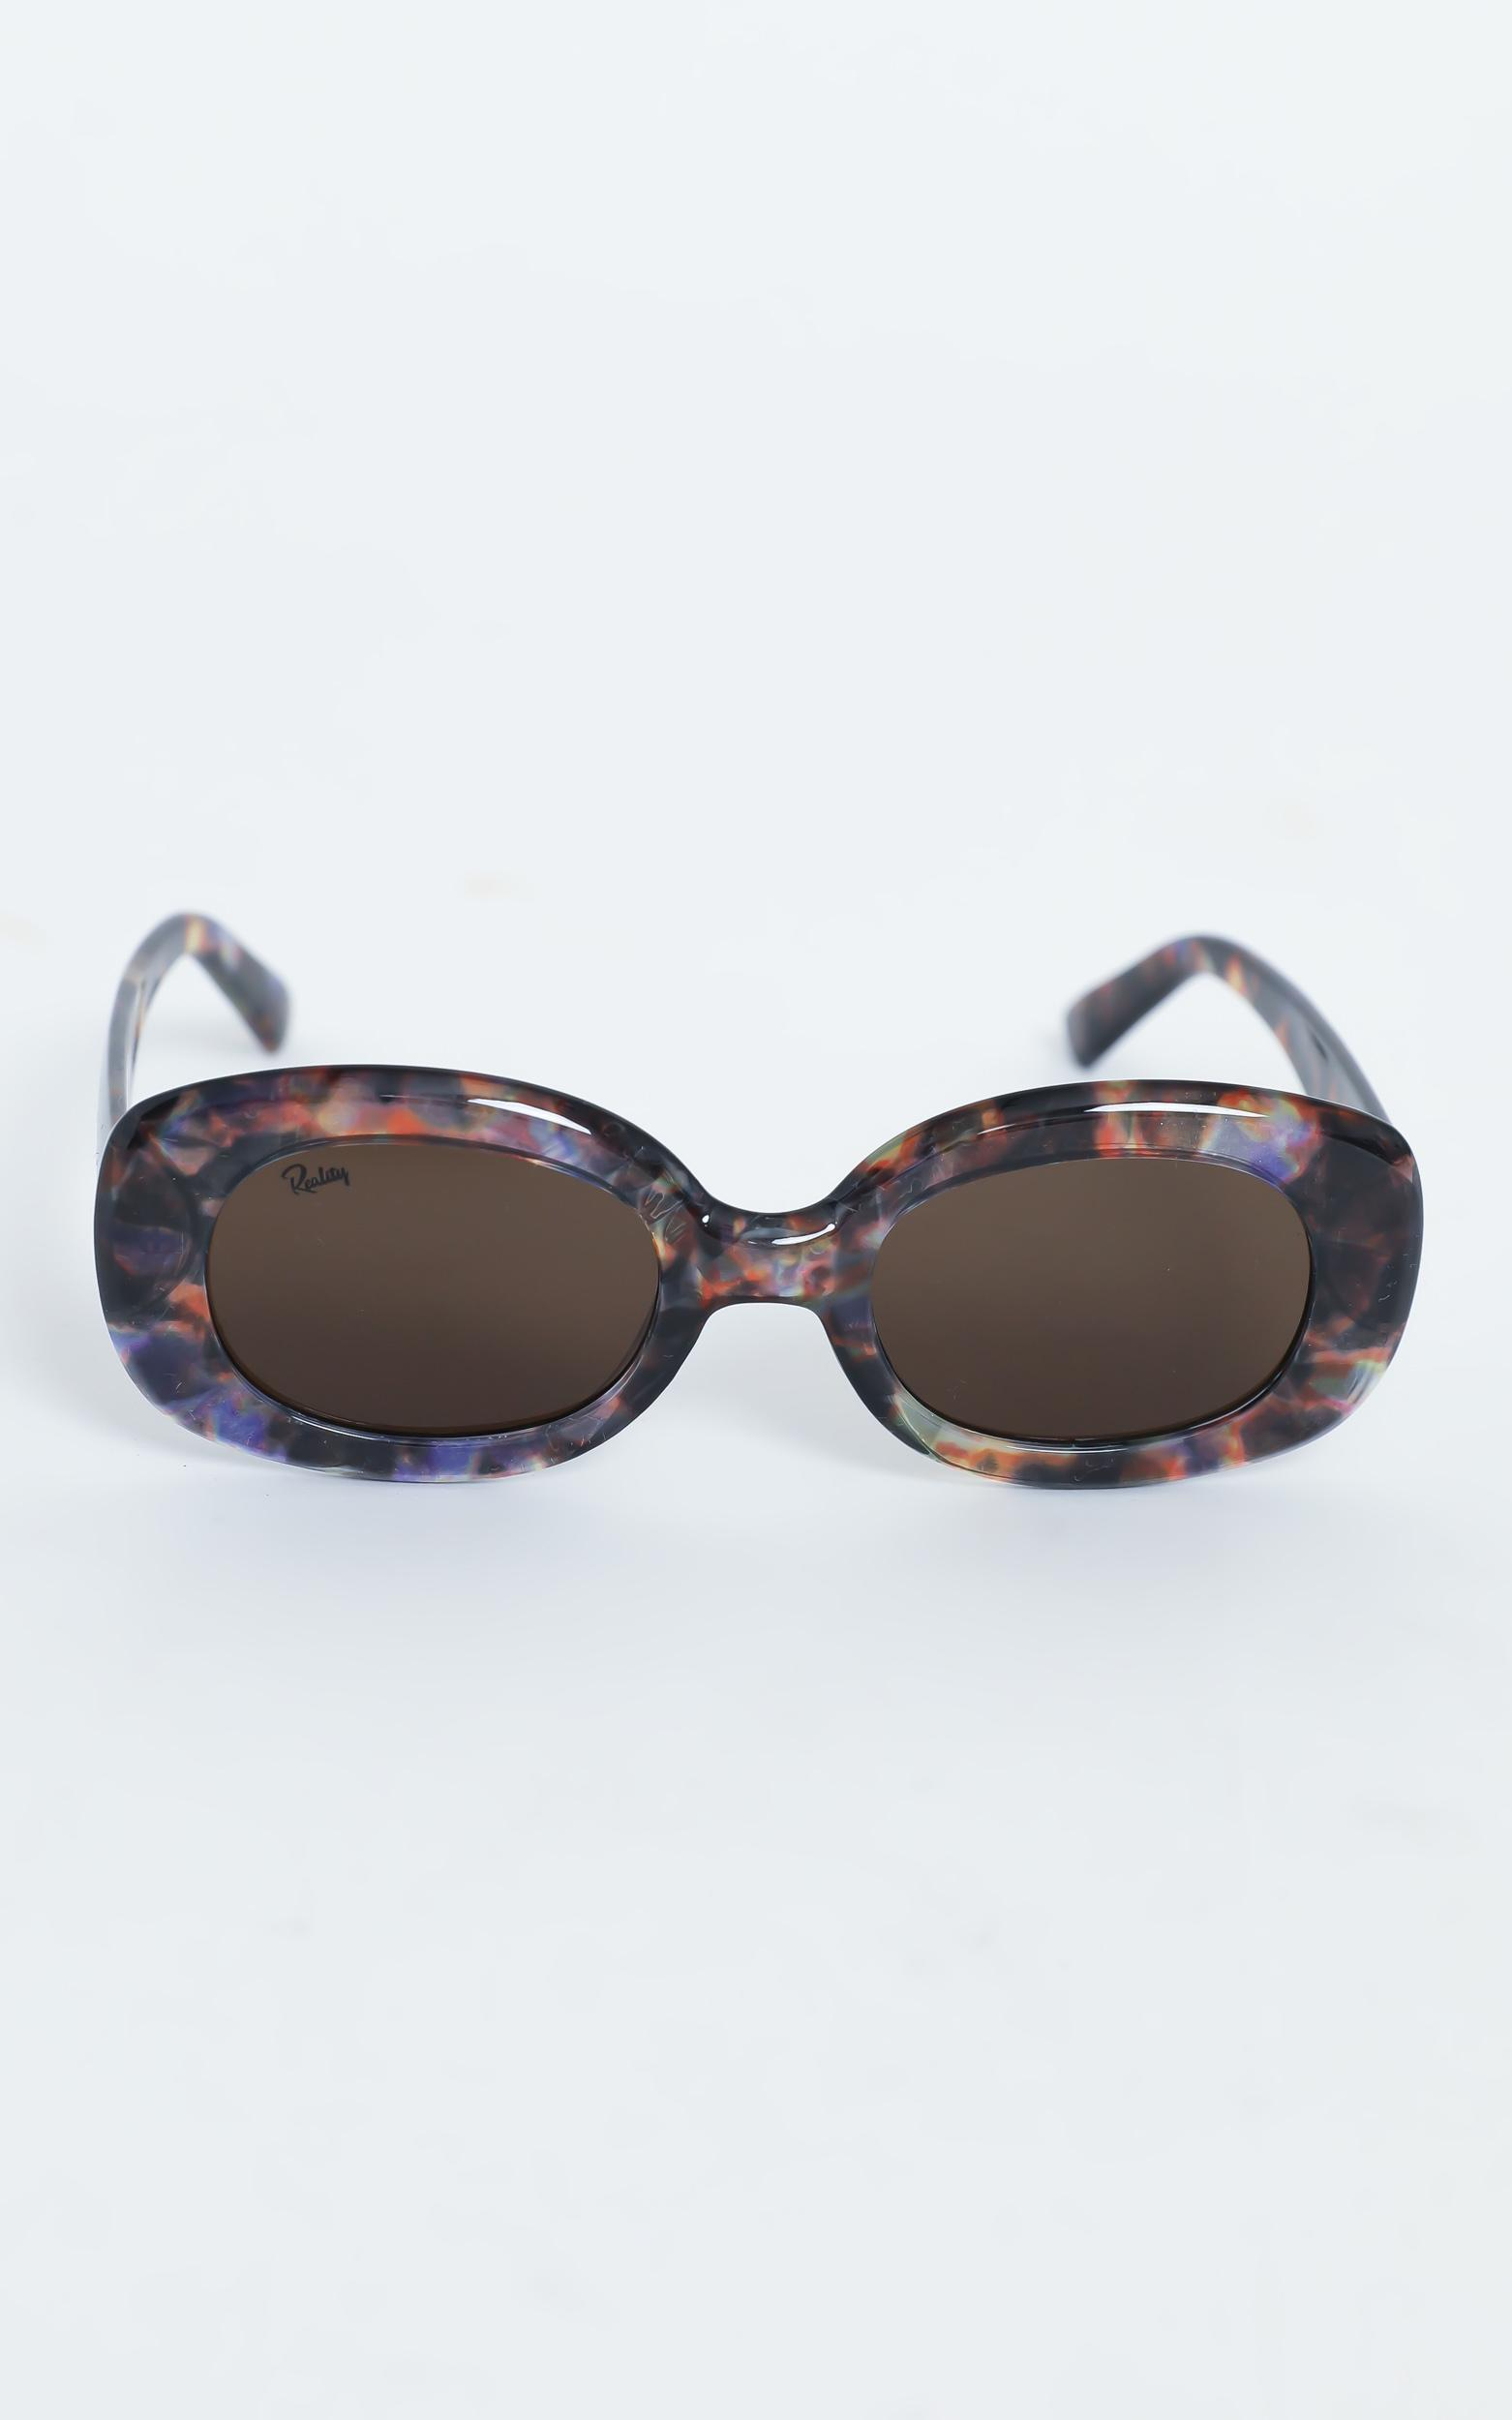 Reality Eyewear - Lady Grandzigger Sunglasses in Lilac Turtle, Purple, hi-res image number null